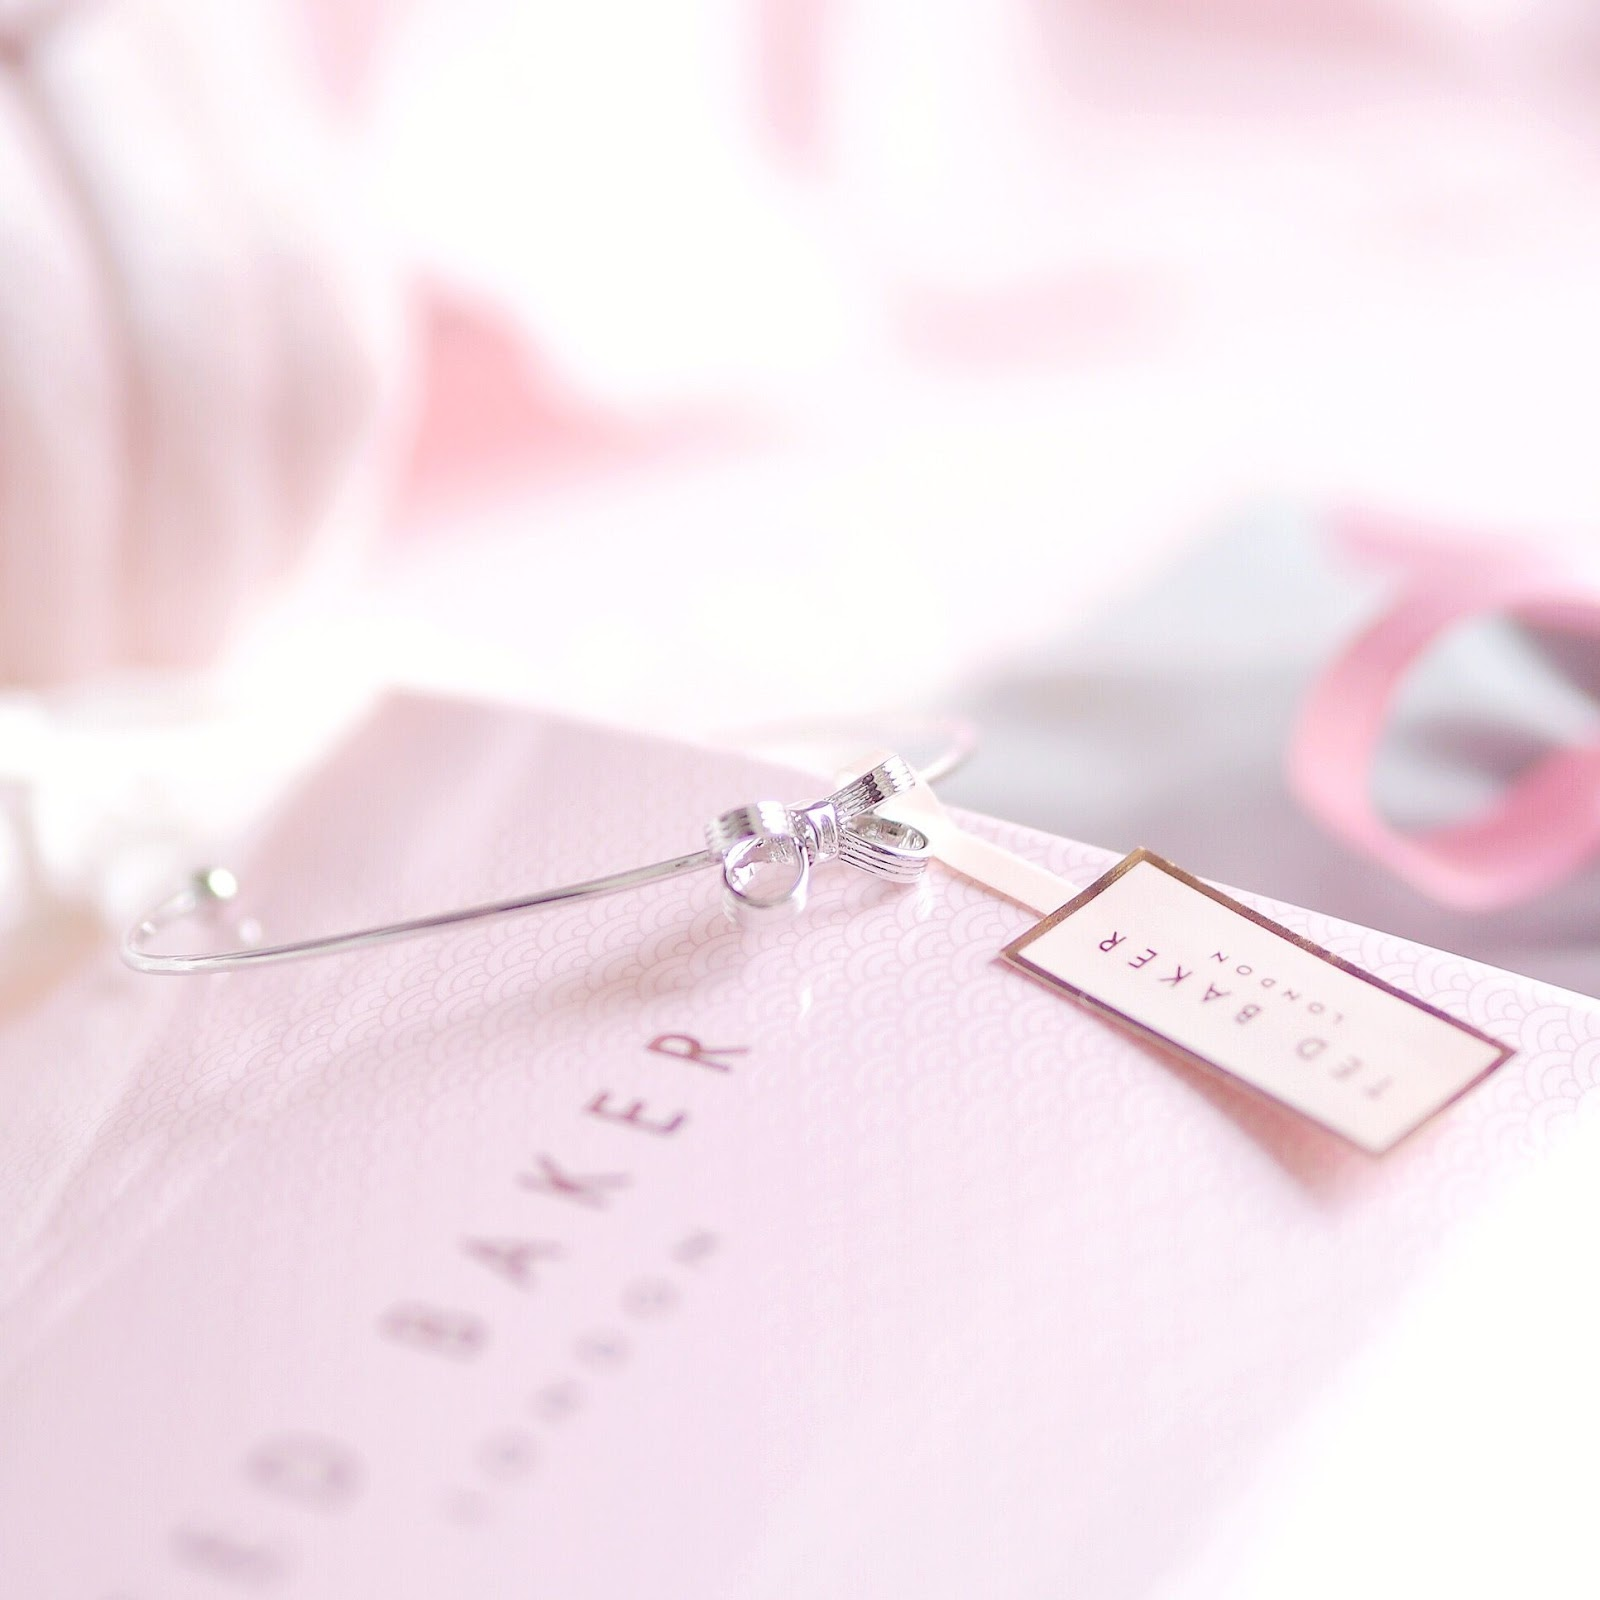 Ted Baker Mini Bow Cuff, Silver | What I Got Treated To On Christmas Day